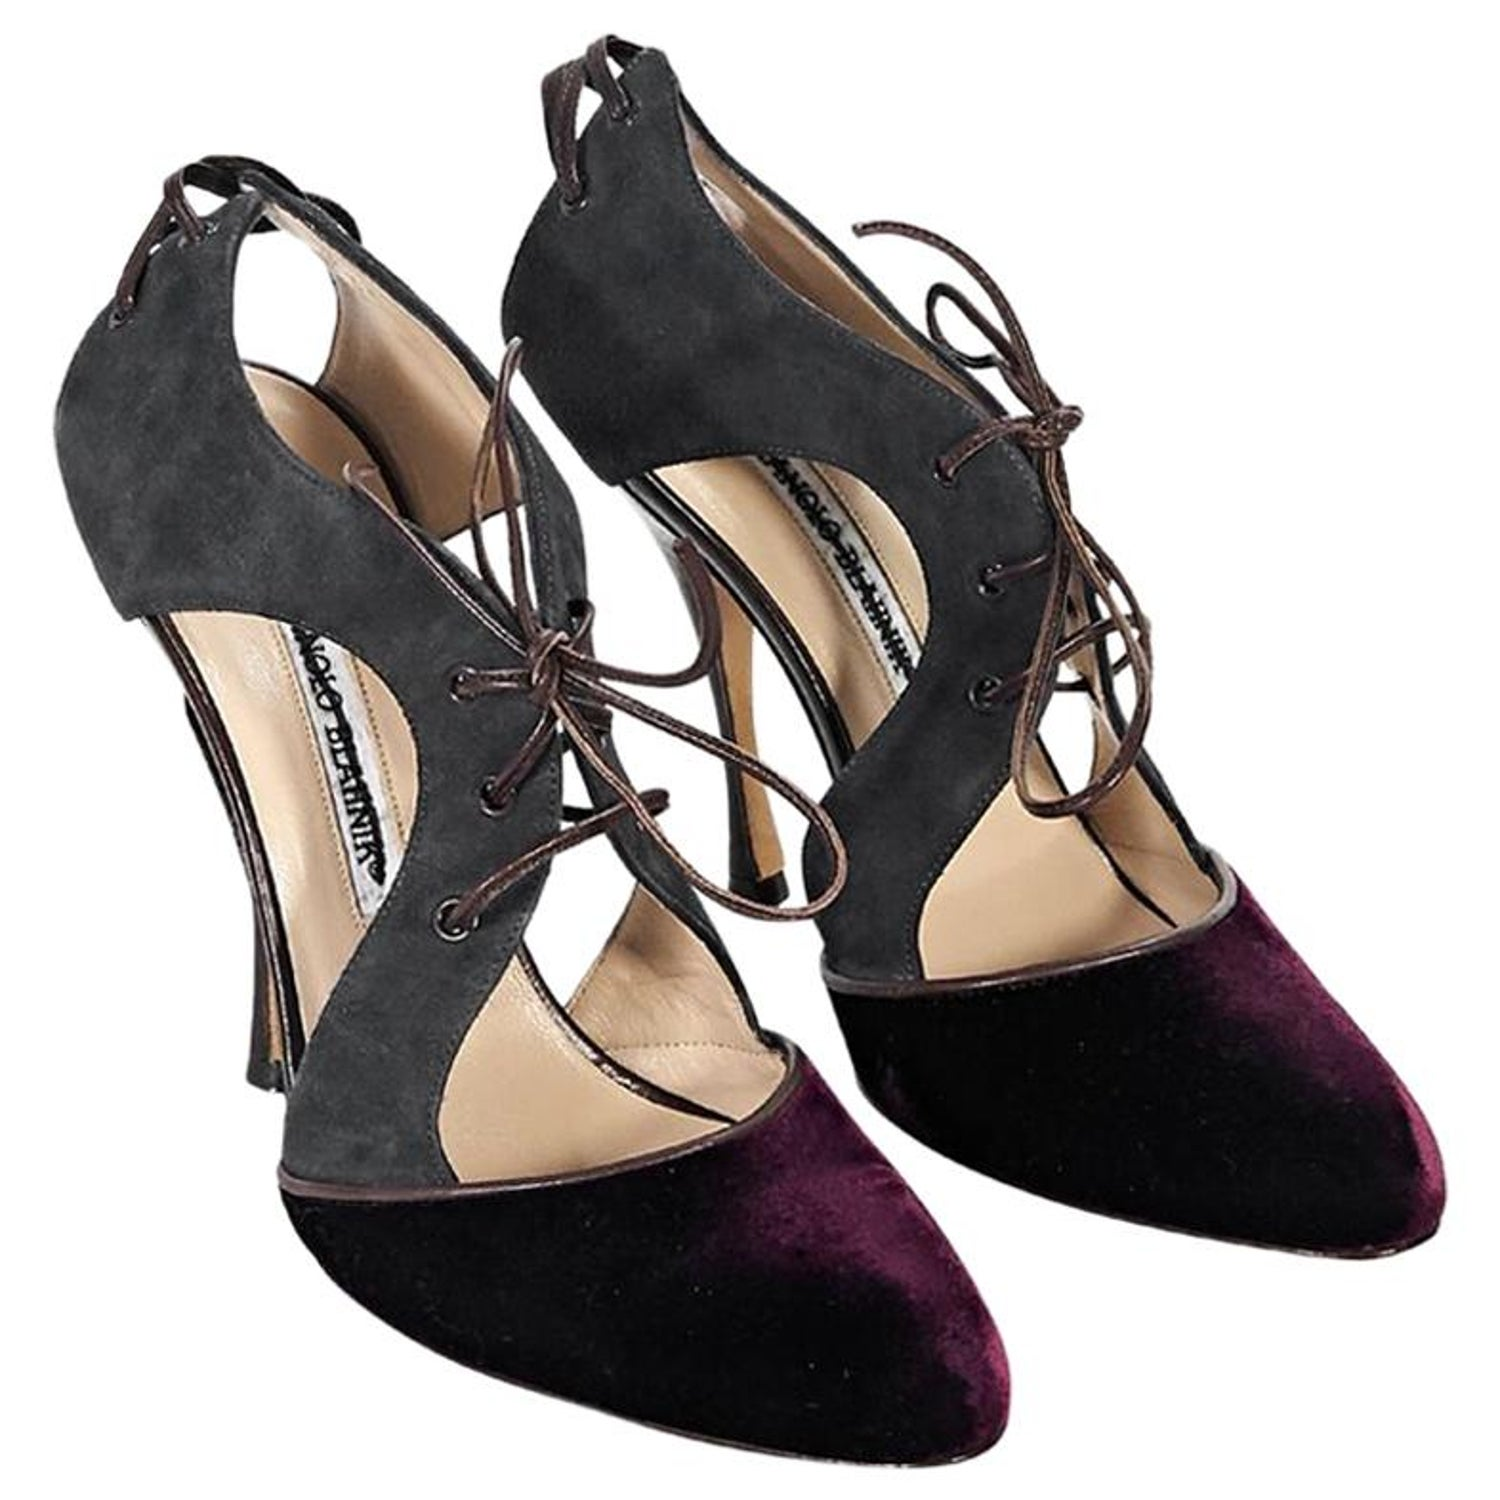 2bc6f014054ab Grey and Burgundy Manolo Blahnik Suede and Velvet Pumps at 1stdibs